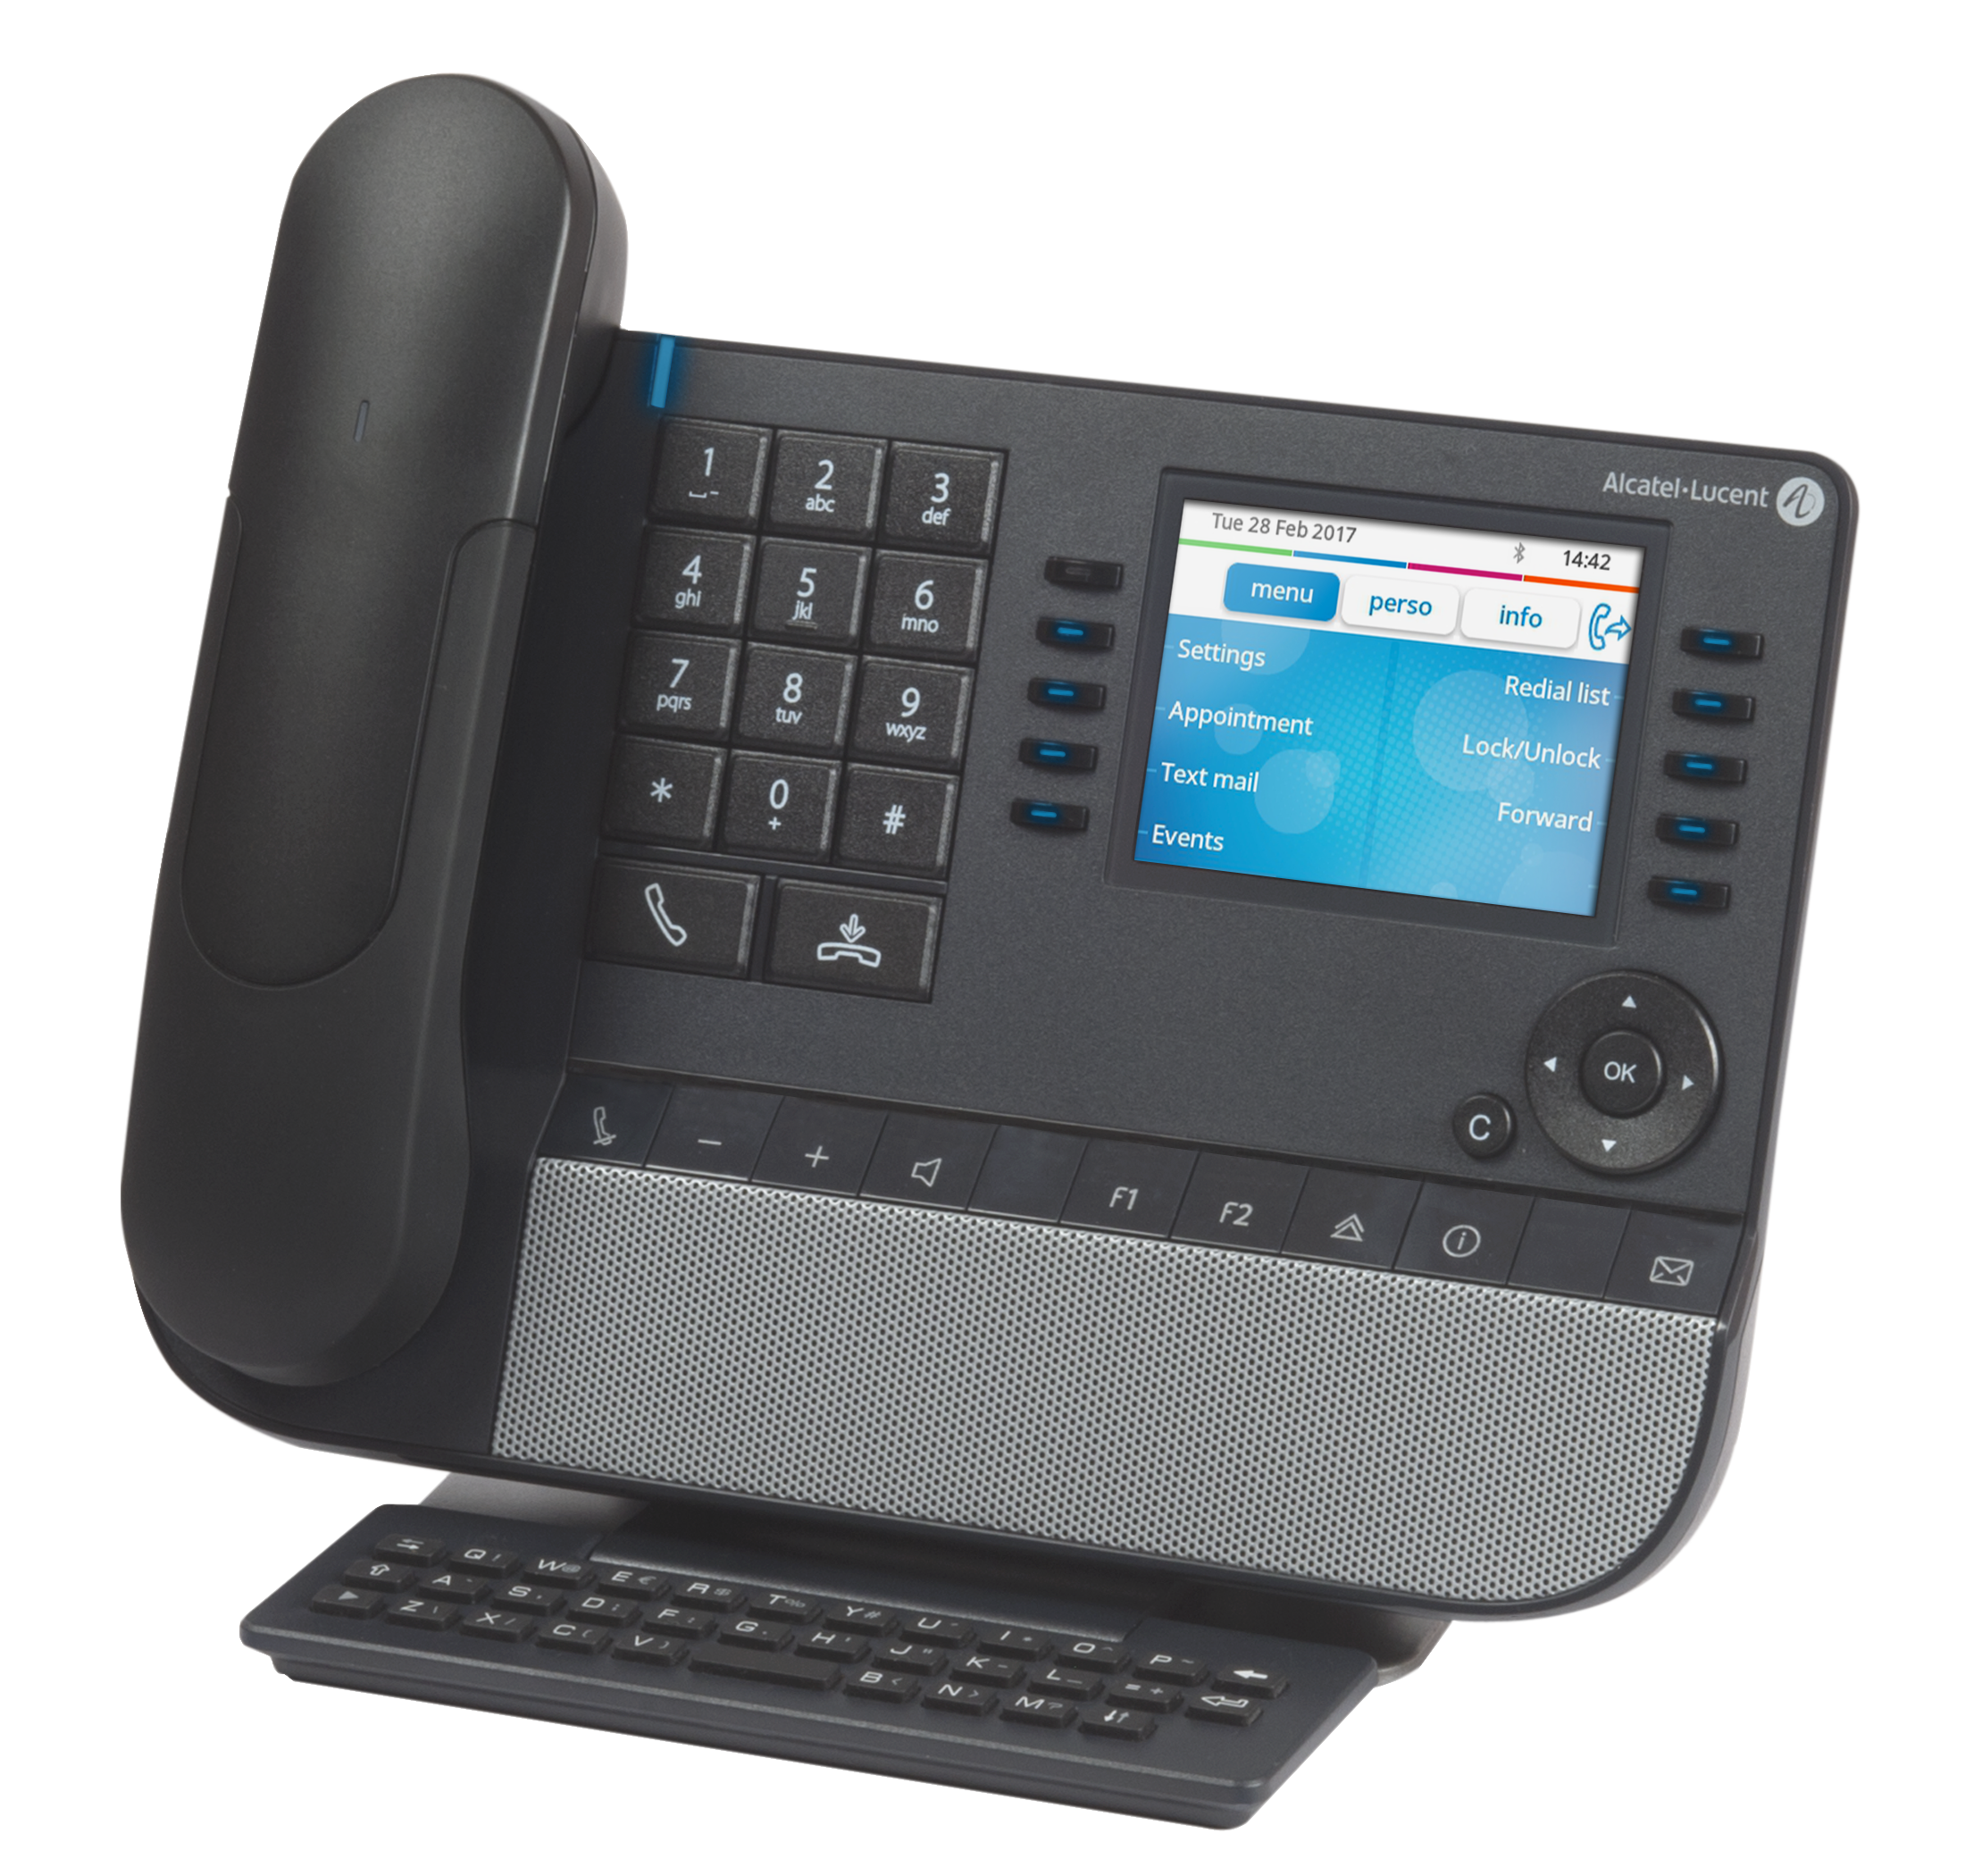 8068s_BT_PremiumDeskphone_f_l_screen(1)